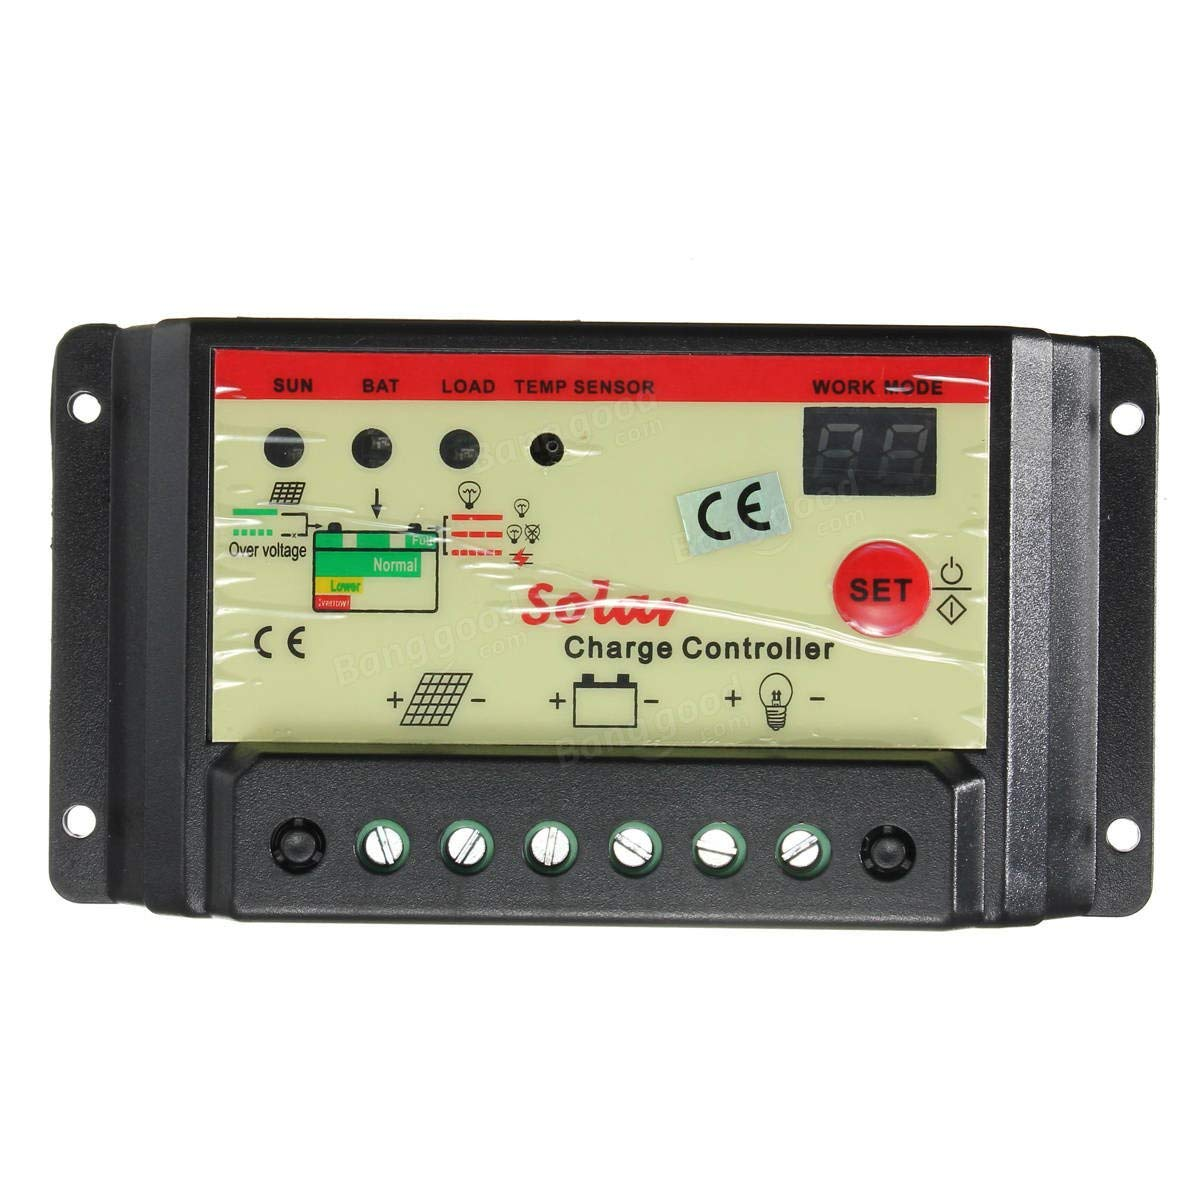 10A 12V 24V Solar Panel Battery Regulator Auto Switch Charge Controller - Electrical Gadgets & Tools Solar Panel Controller-1 x Solar Controller,1 x User Manual